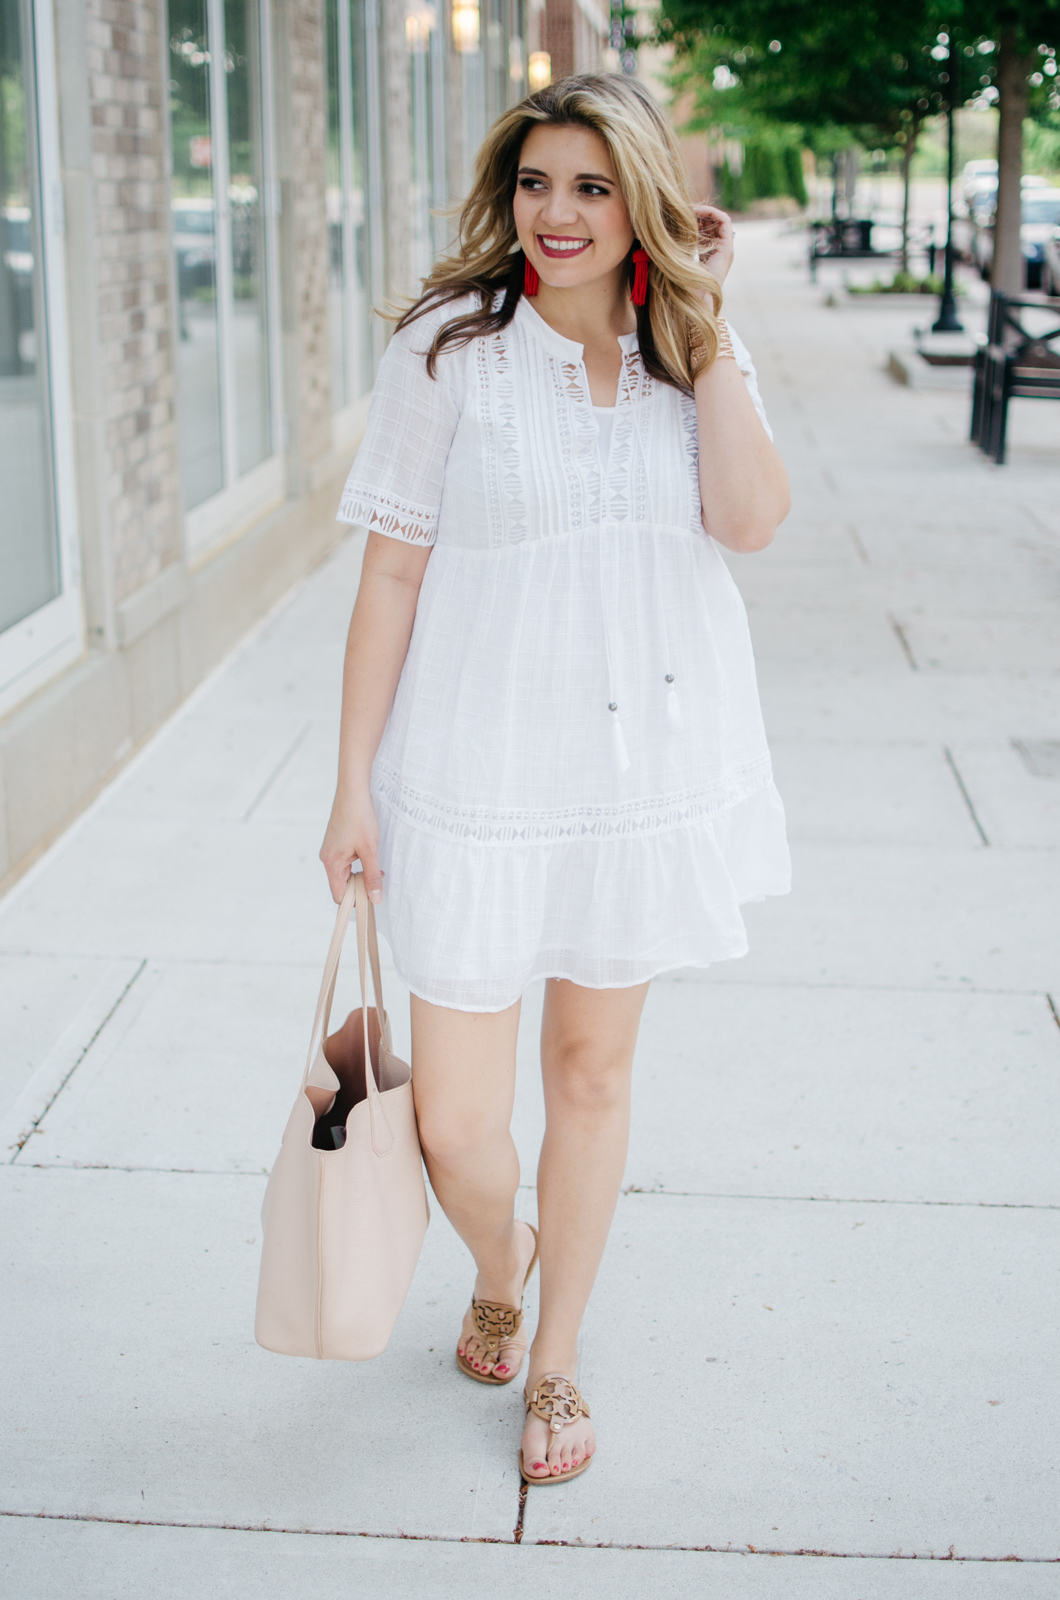 spring to summer outfit - the perfect white summer dress | For more cute weekend outfits, head to bylaurenm.com!